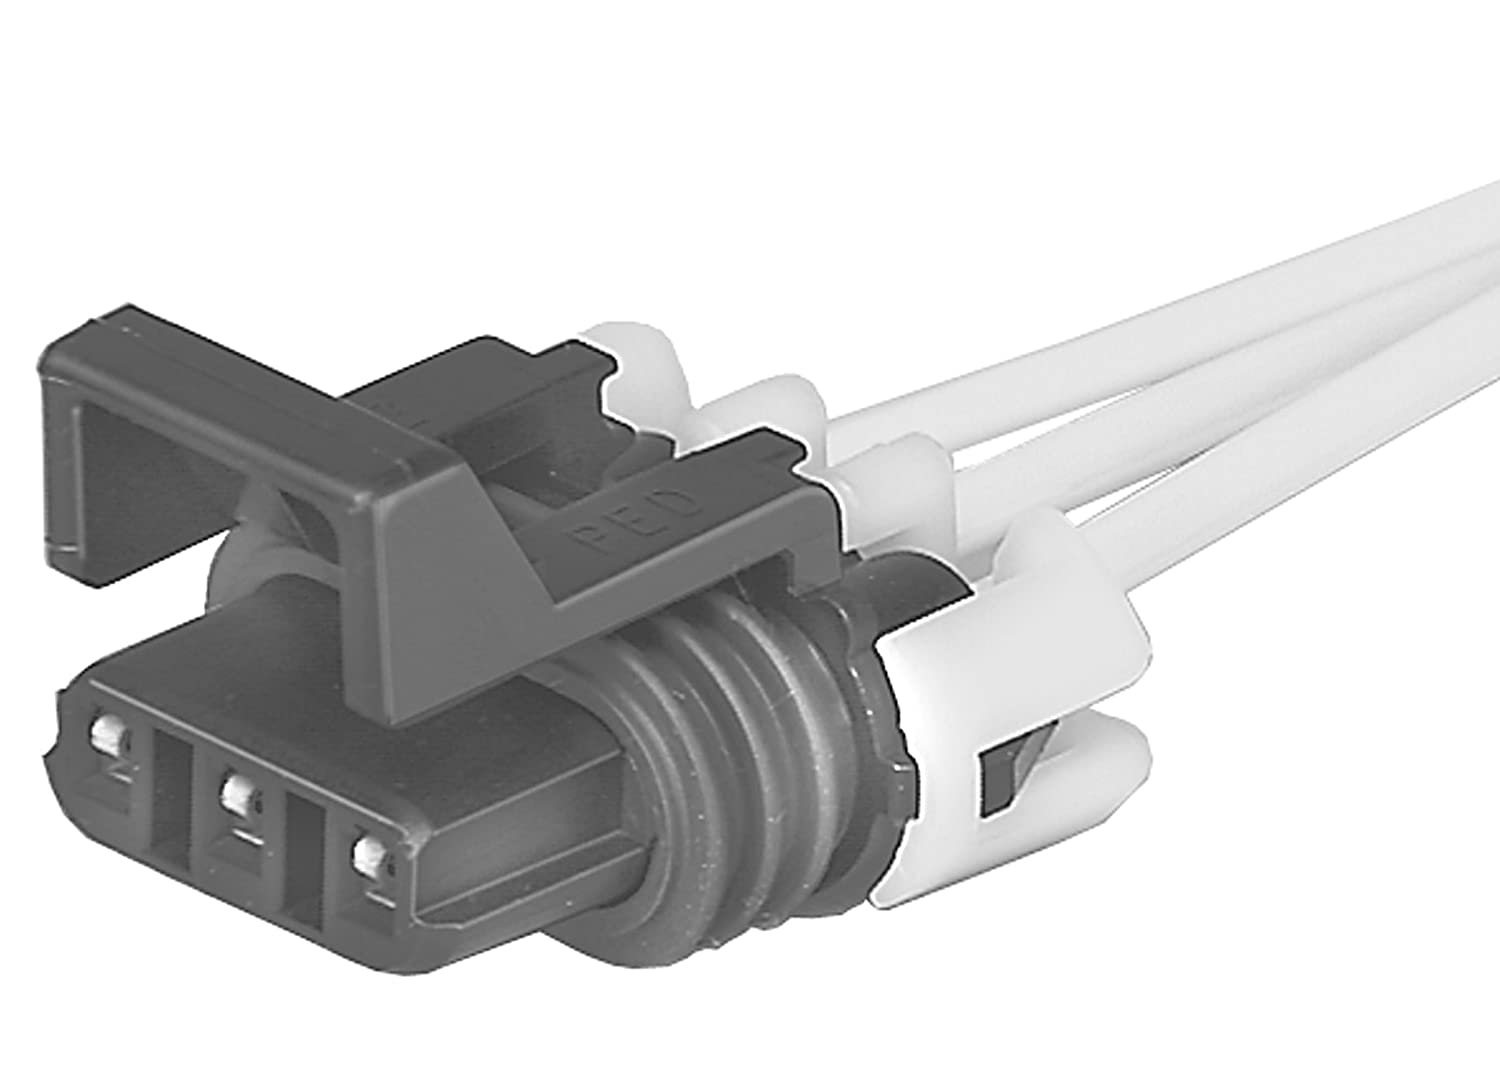 Acdelco Pt420 Gm Original Equipment 3 Way Female Black Wiring Connectors Multi Purpose Pigtail Automotive